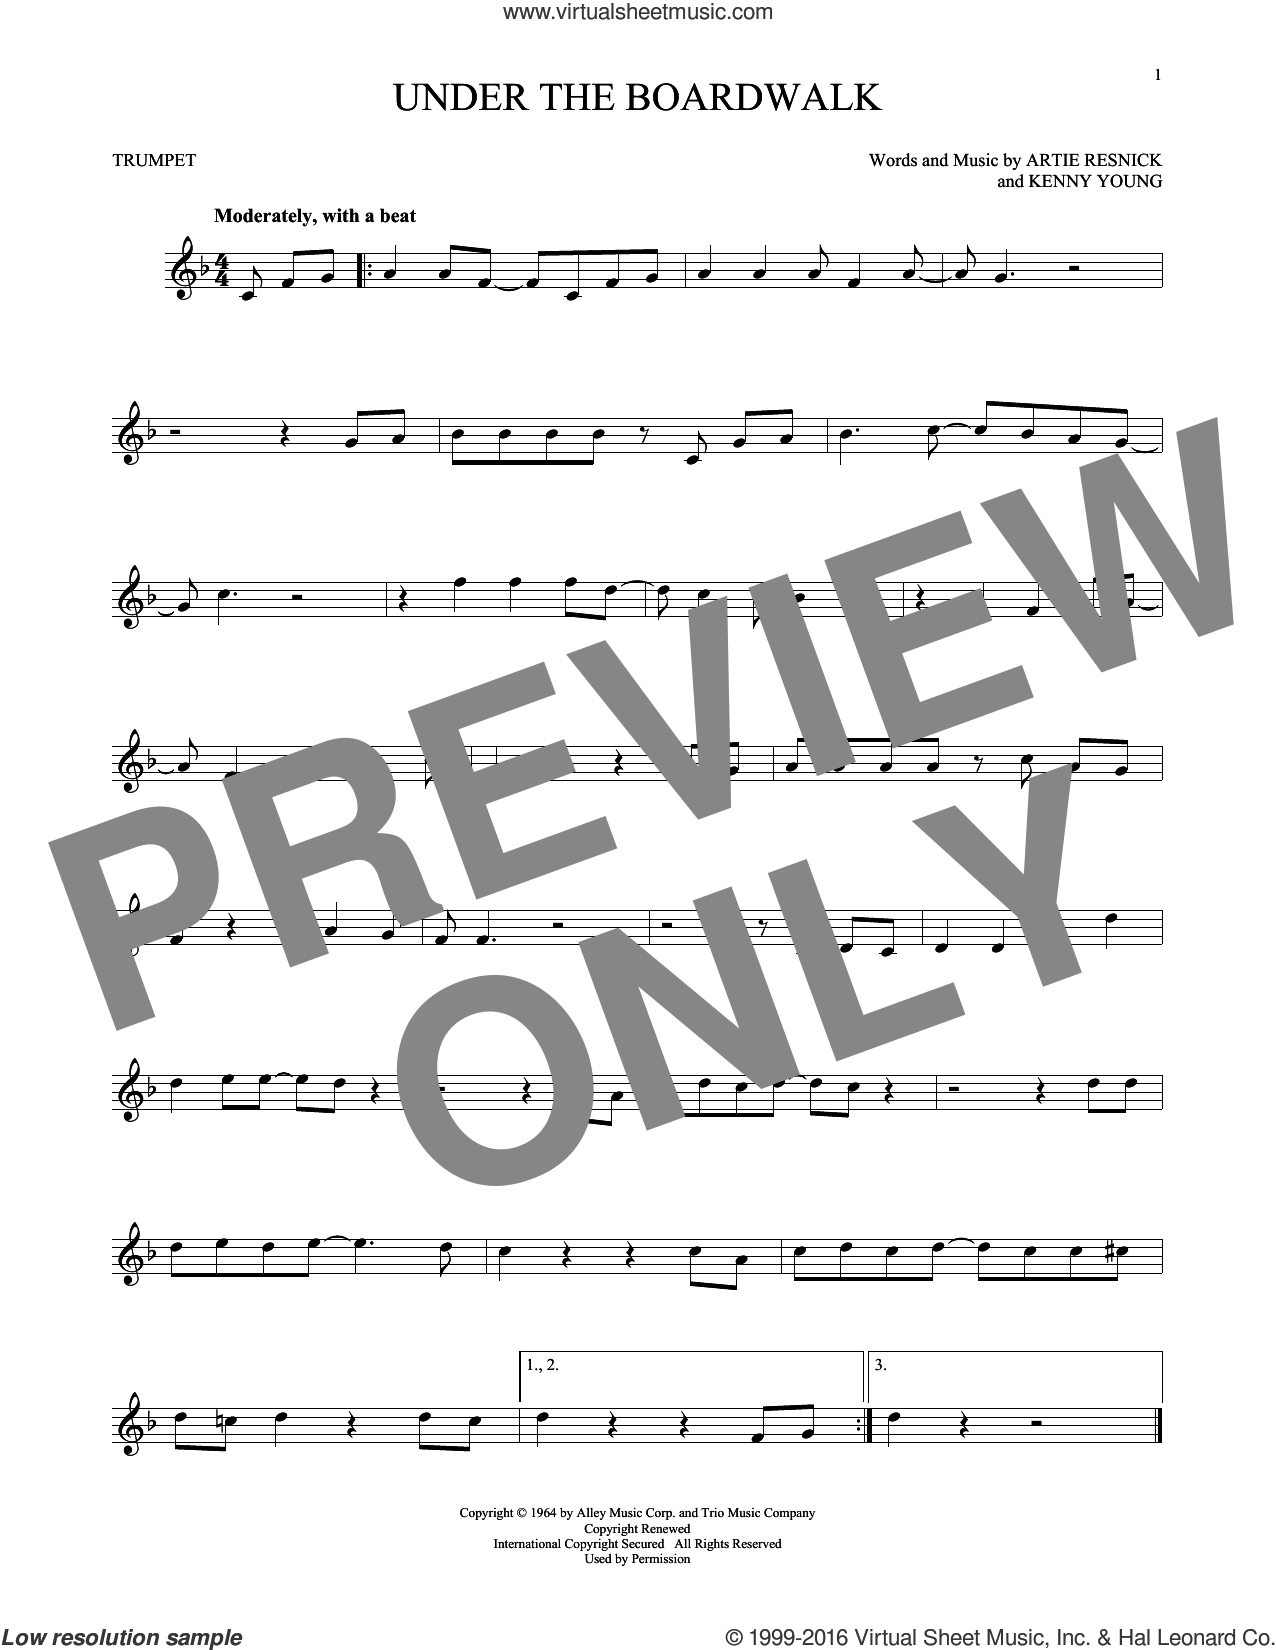 Under The Boardwalk sheet music for trumpet solo by The Drifters, intermediate skill level